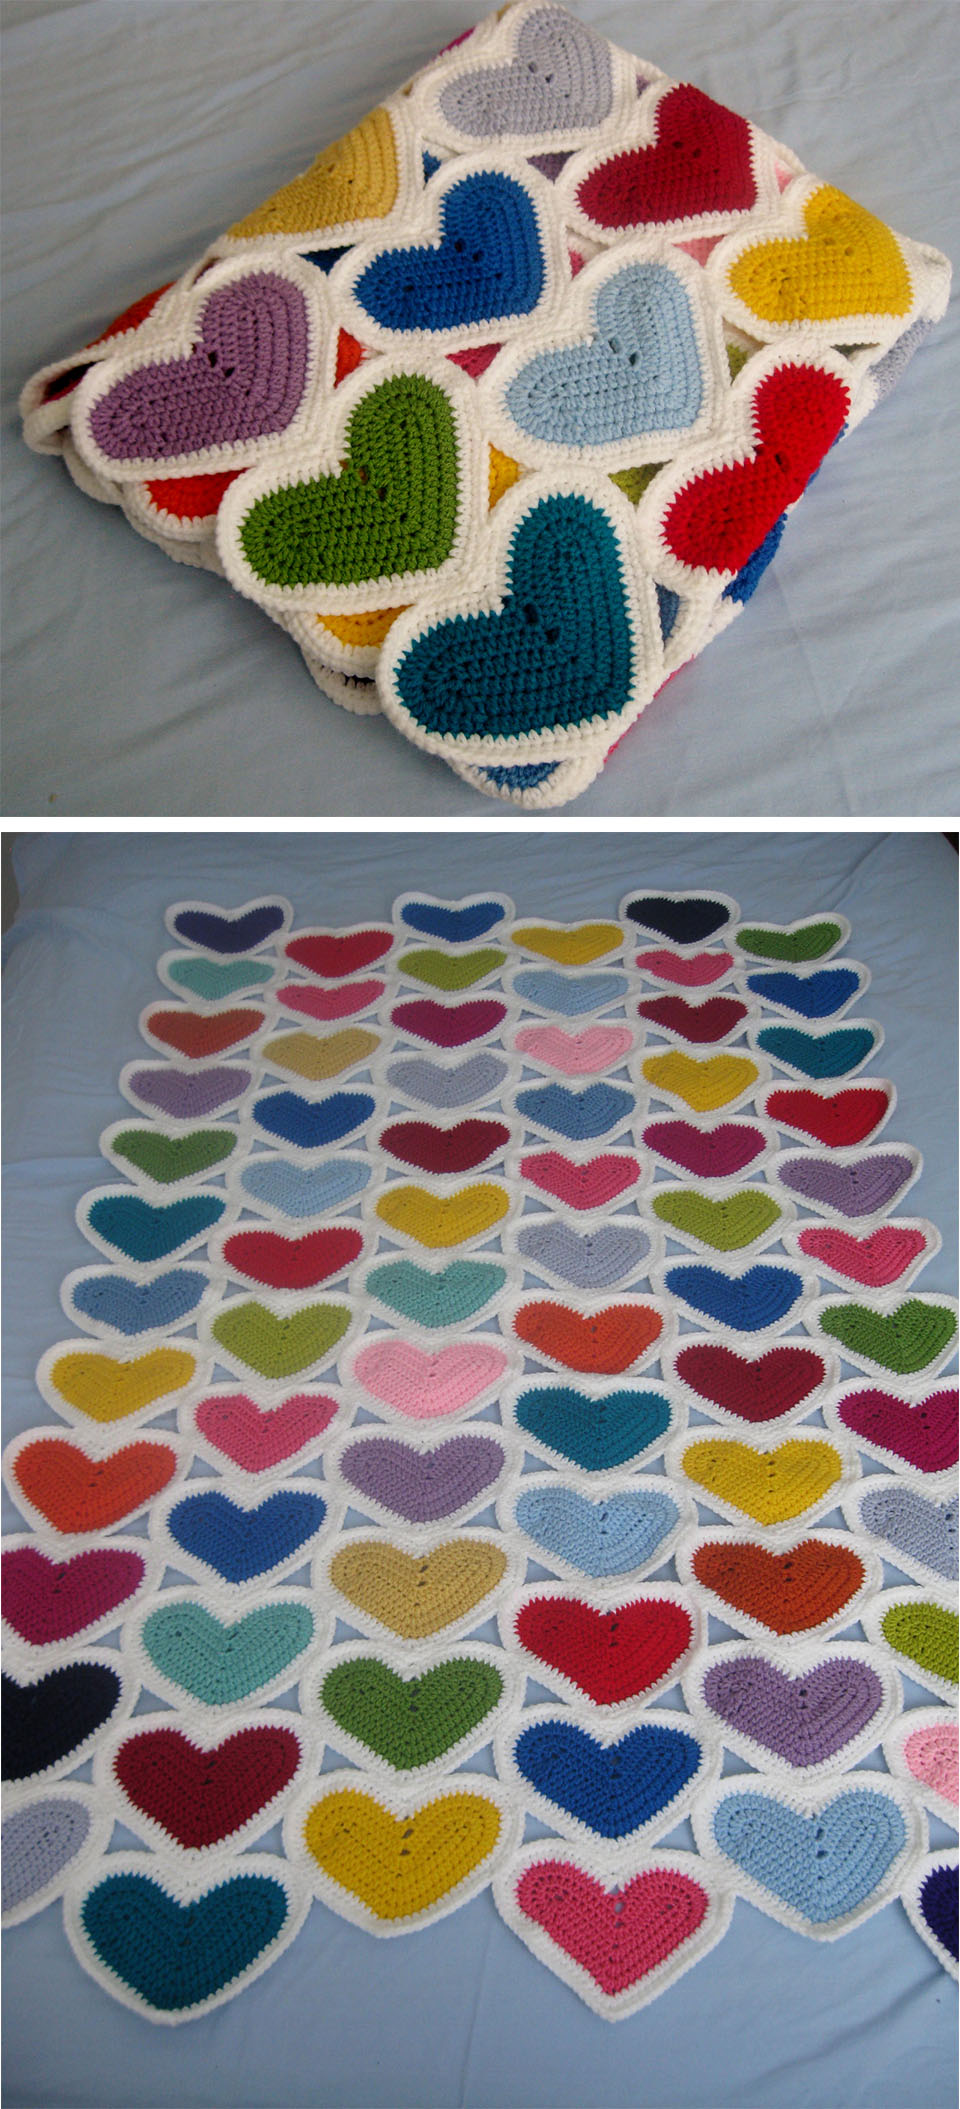 Hearts Crochet Blanket Tutorial